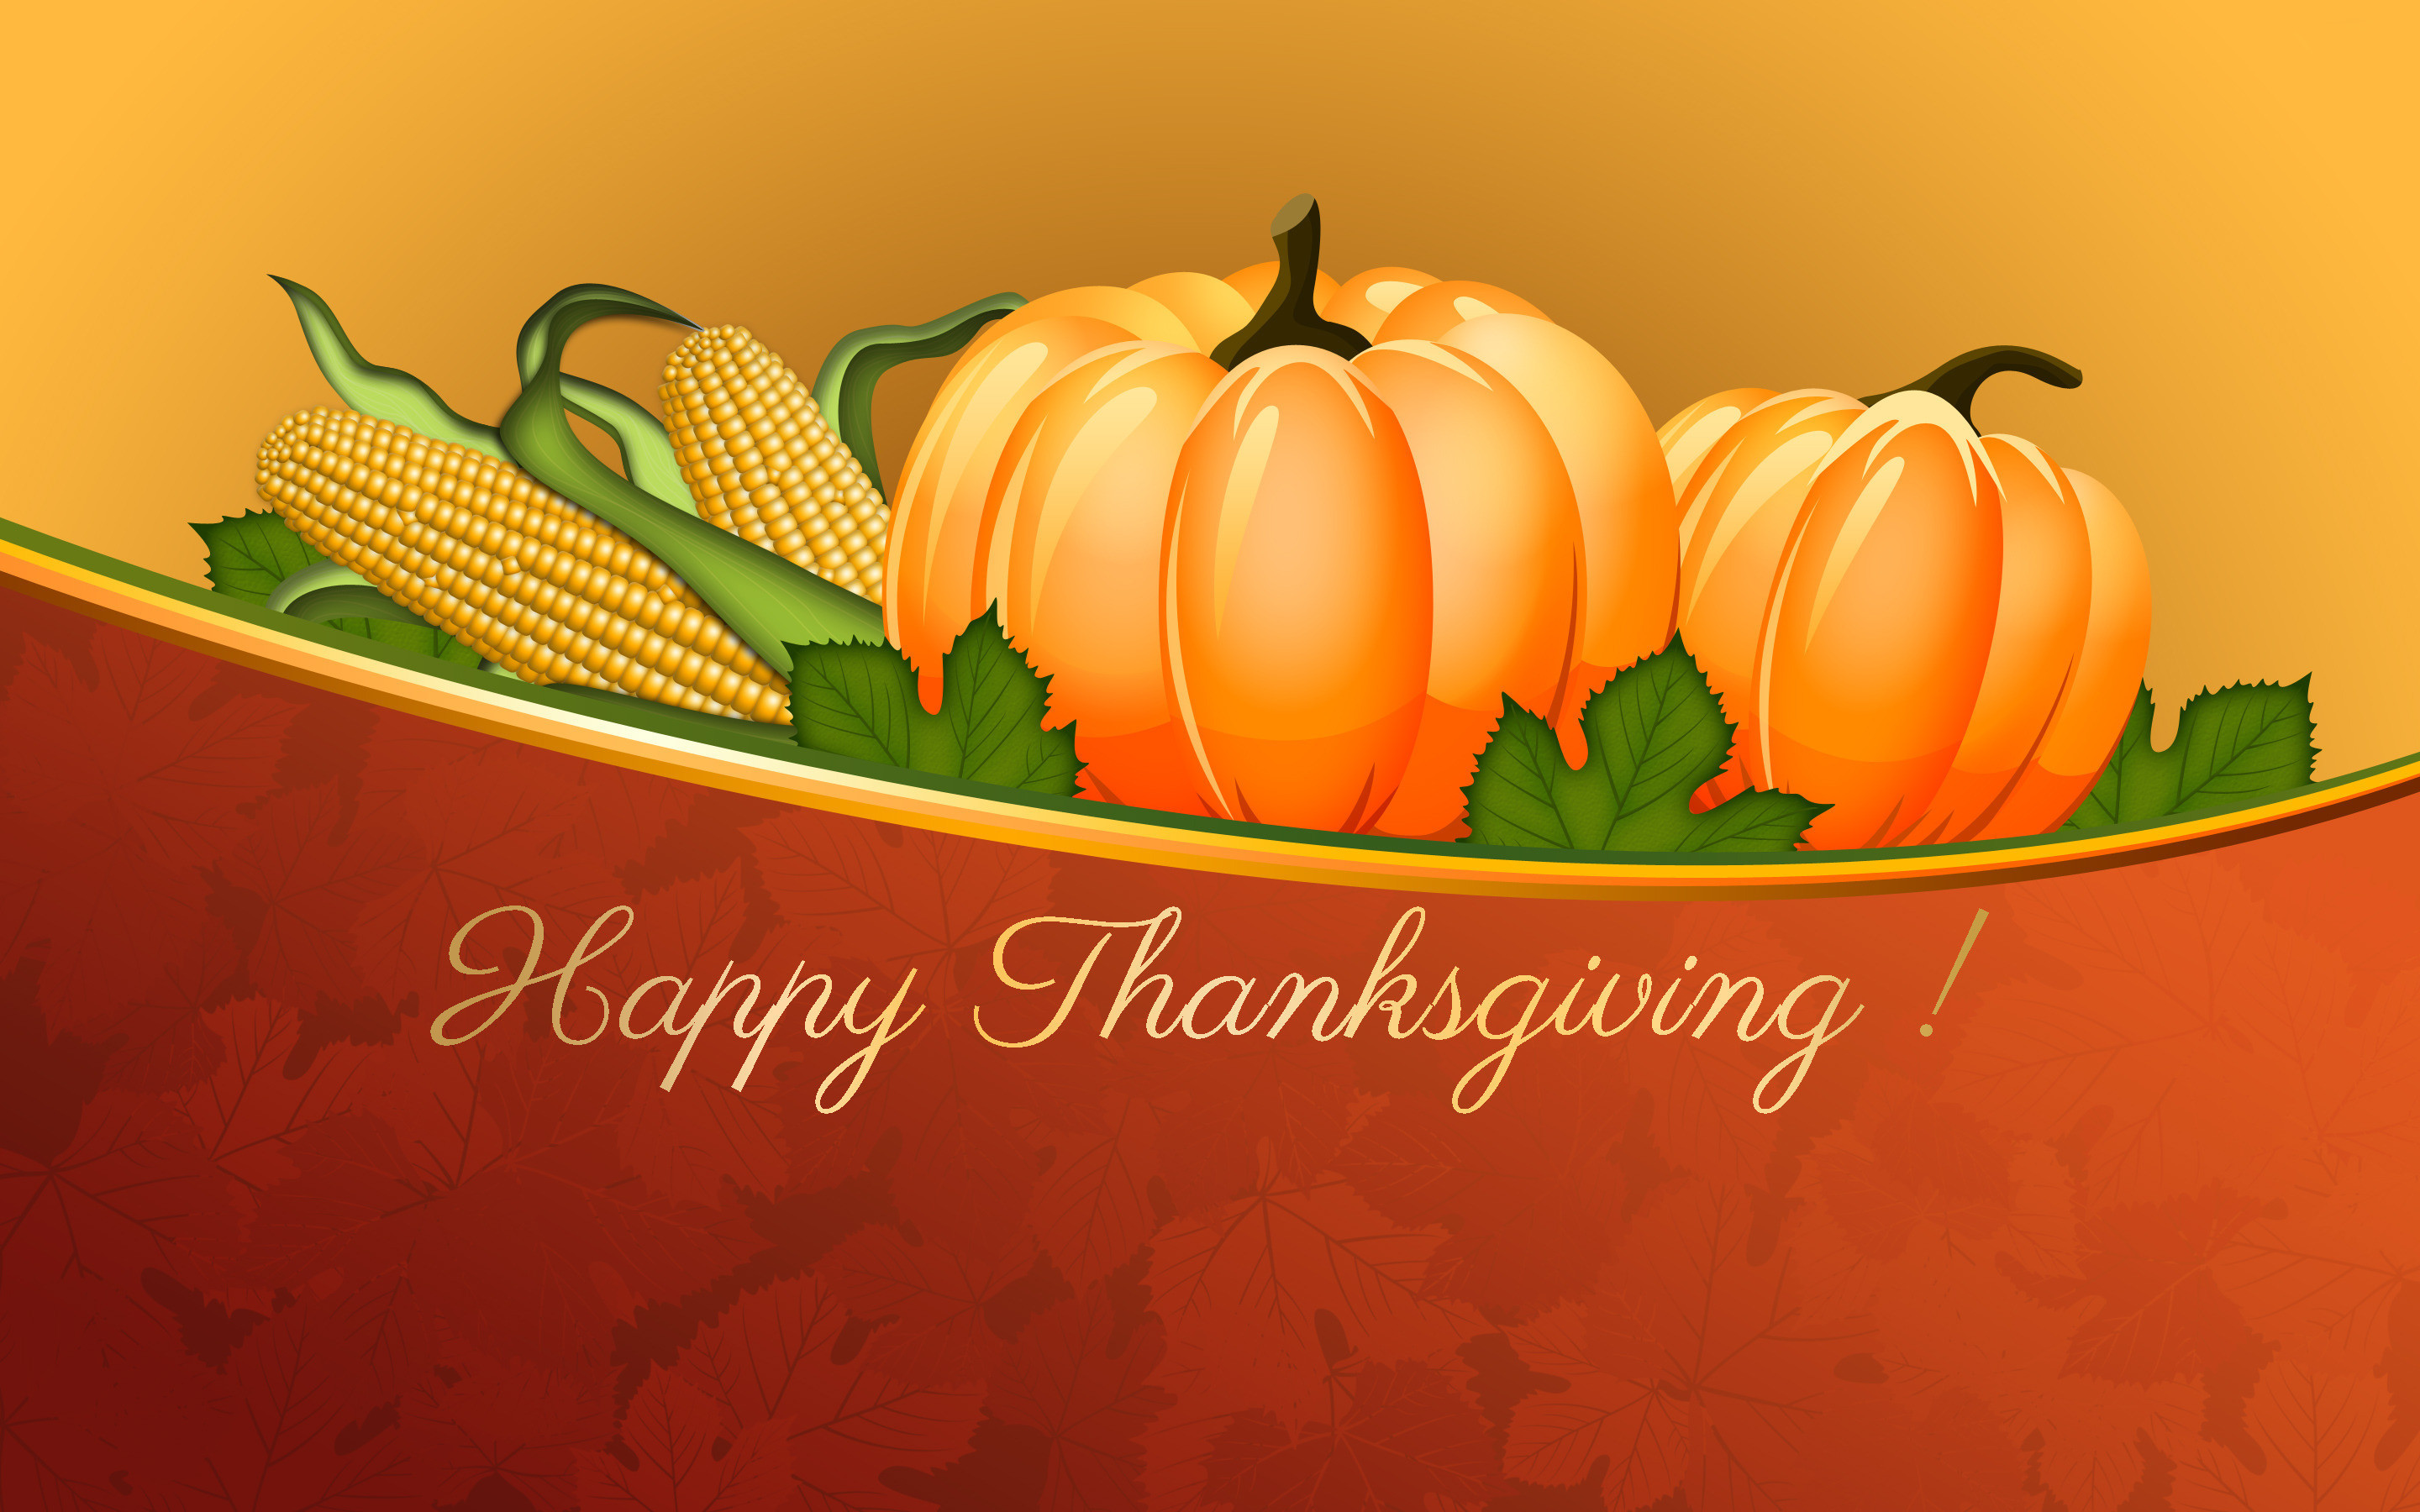 2880x1800 Free download Thanksgiving Desktop Background Wallpaper.